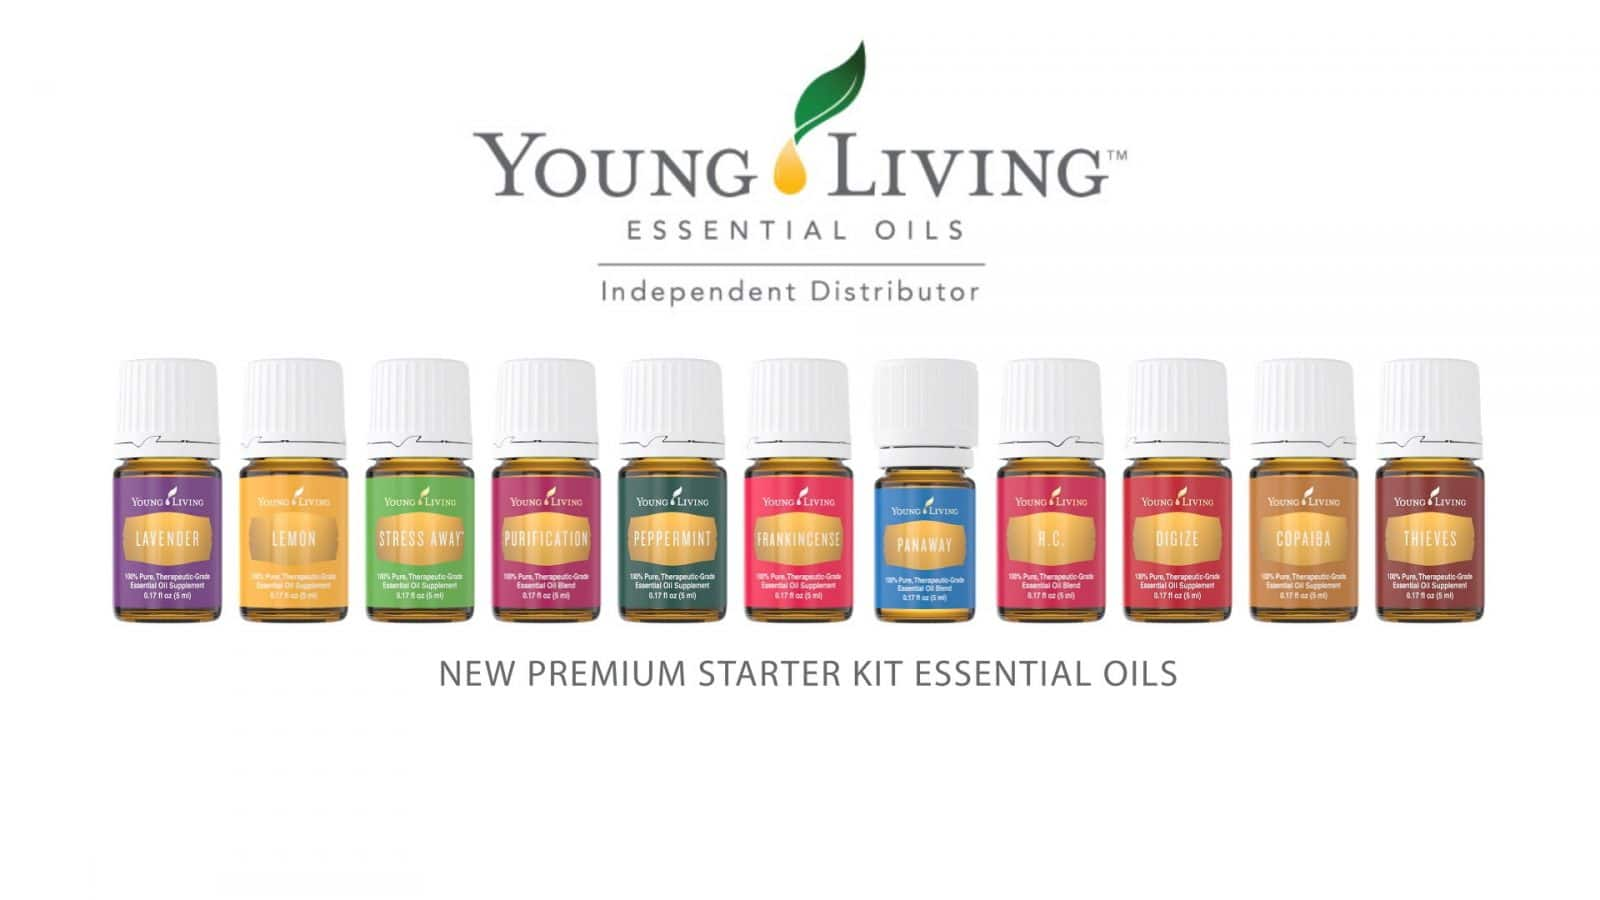 young living starter kit image